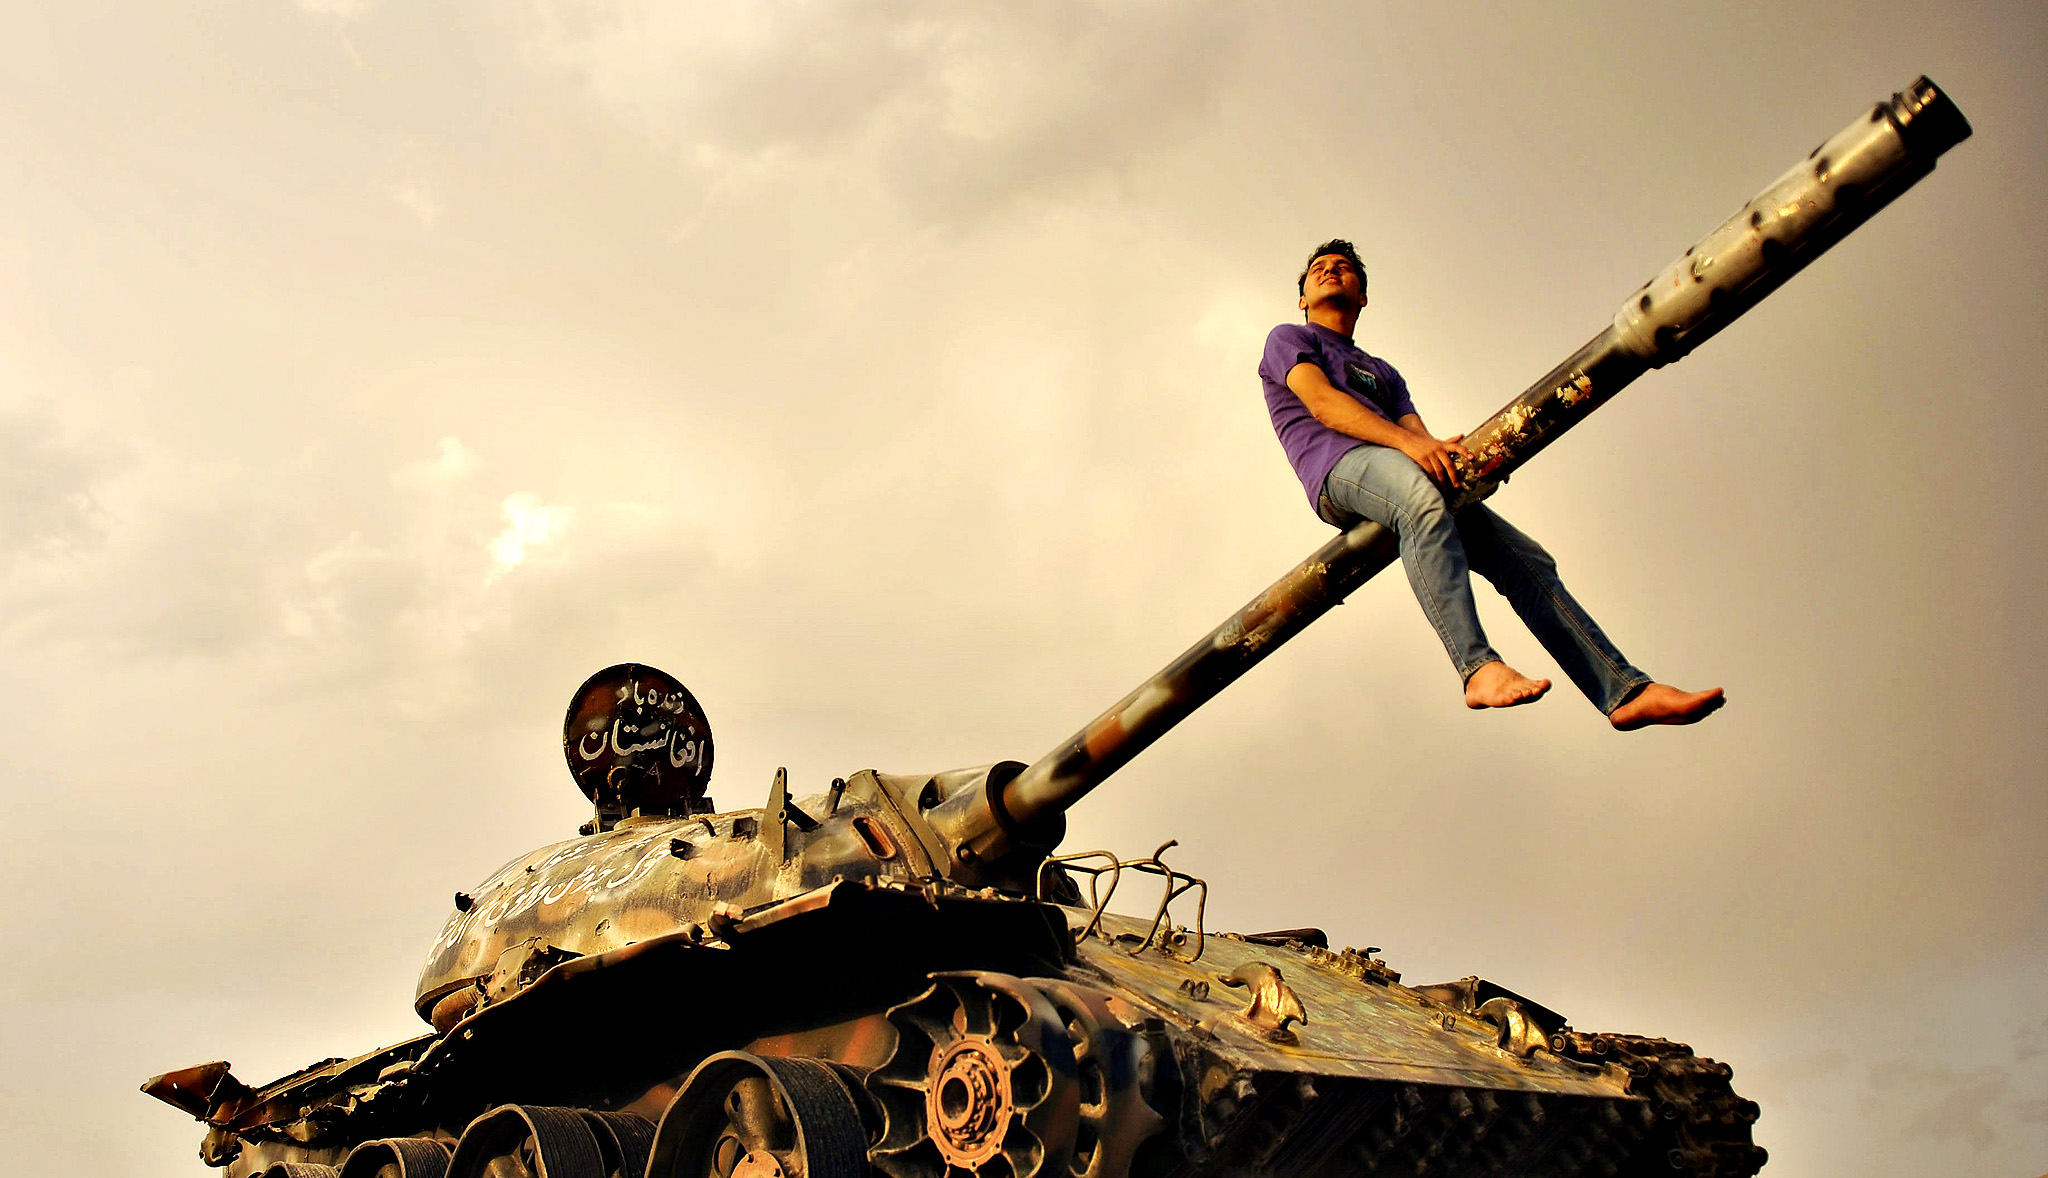 An Afghan youth sits astride the gun barrel of a Soviet-era tank, in Kabul, Afghanistan, 29 August 2014. Soviet troops occupied the country for ten years from 1979 to 1989.